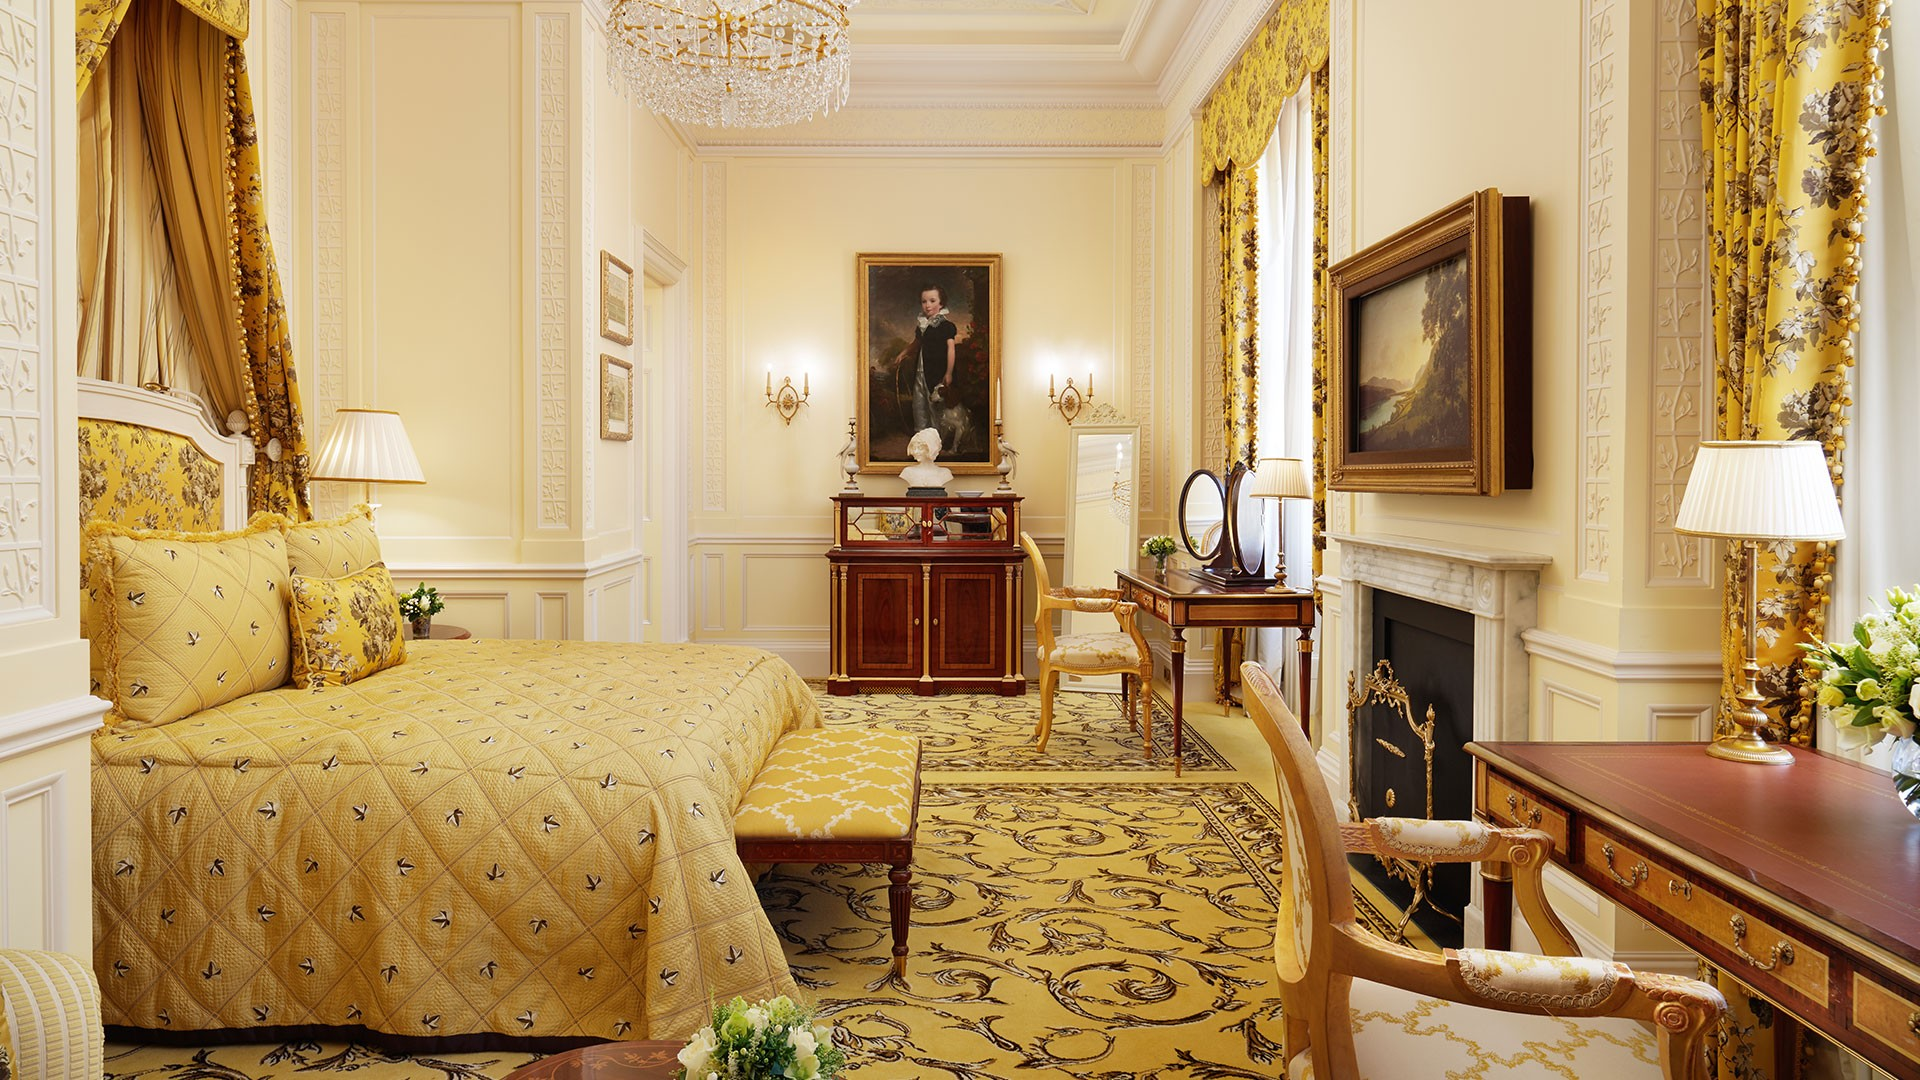 The Royal Suite – The Lanesborough